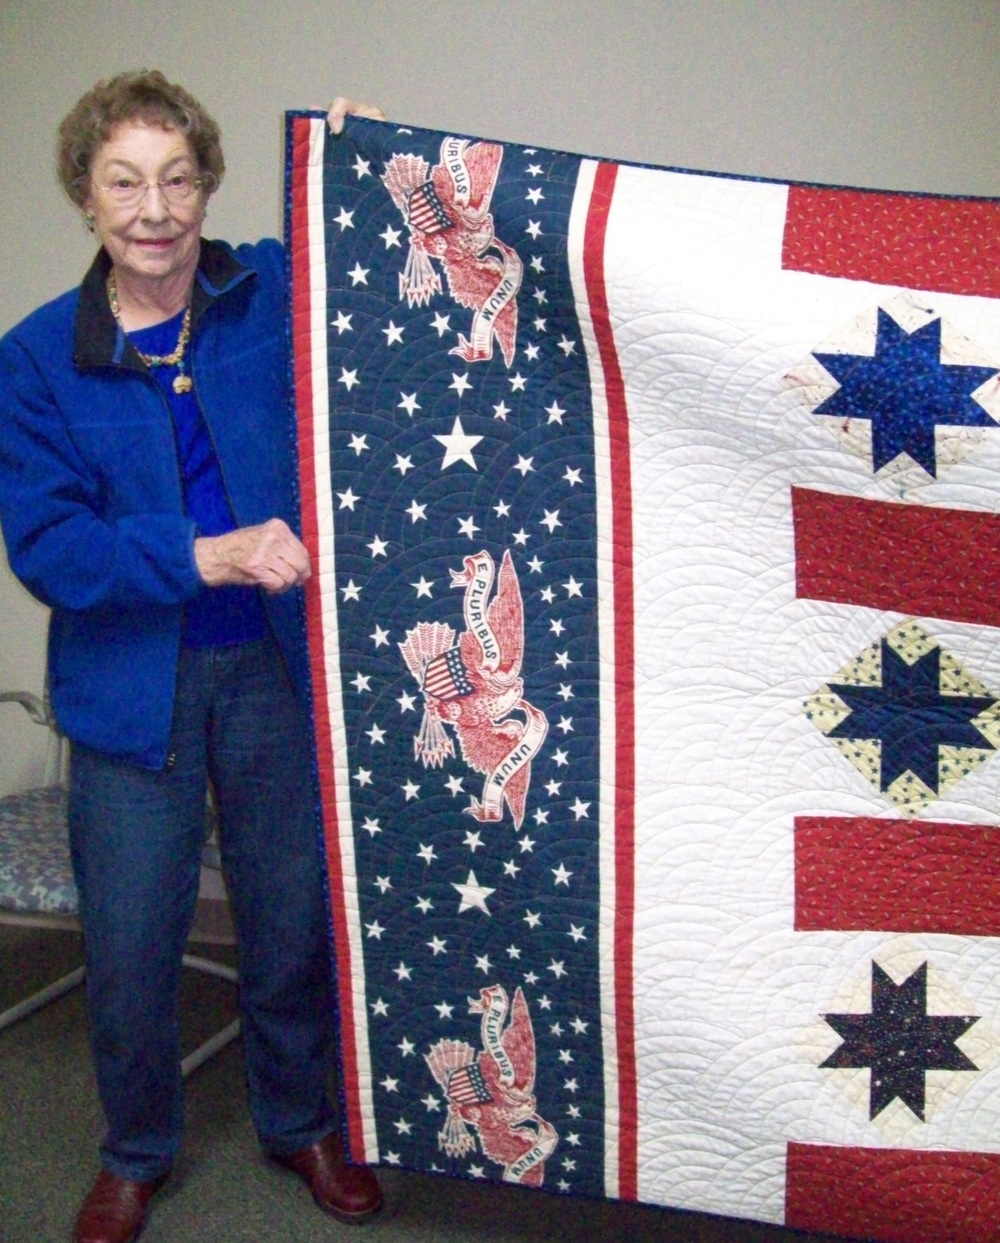 Hattie Geisel with the quilt